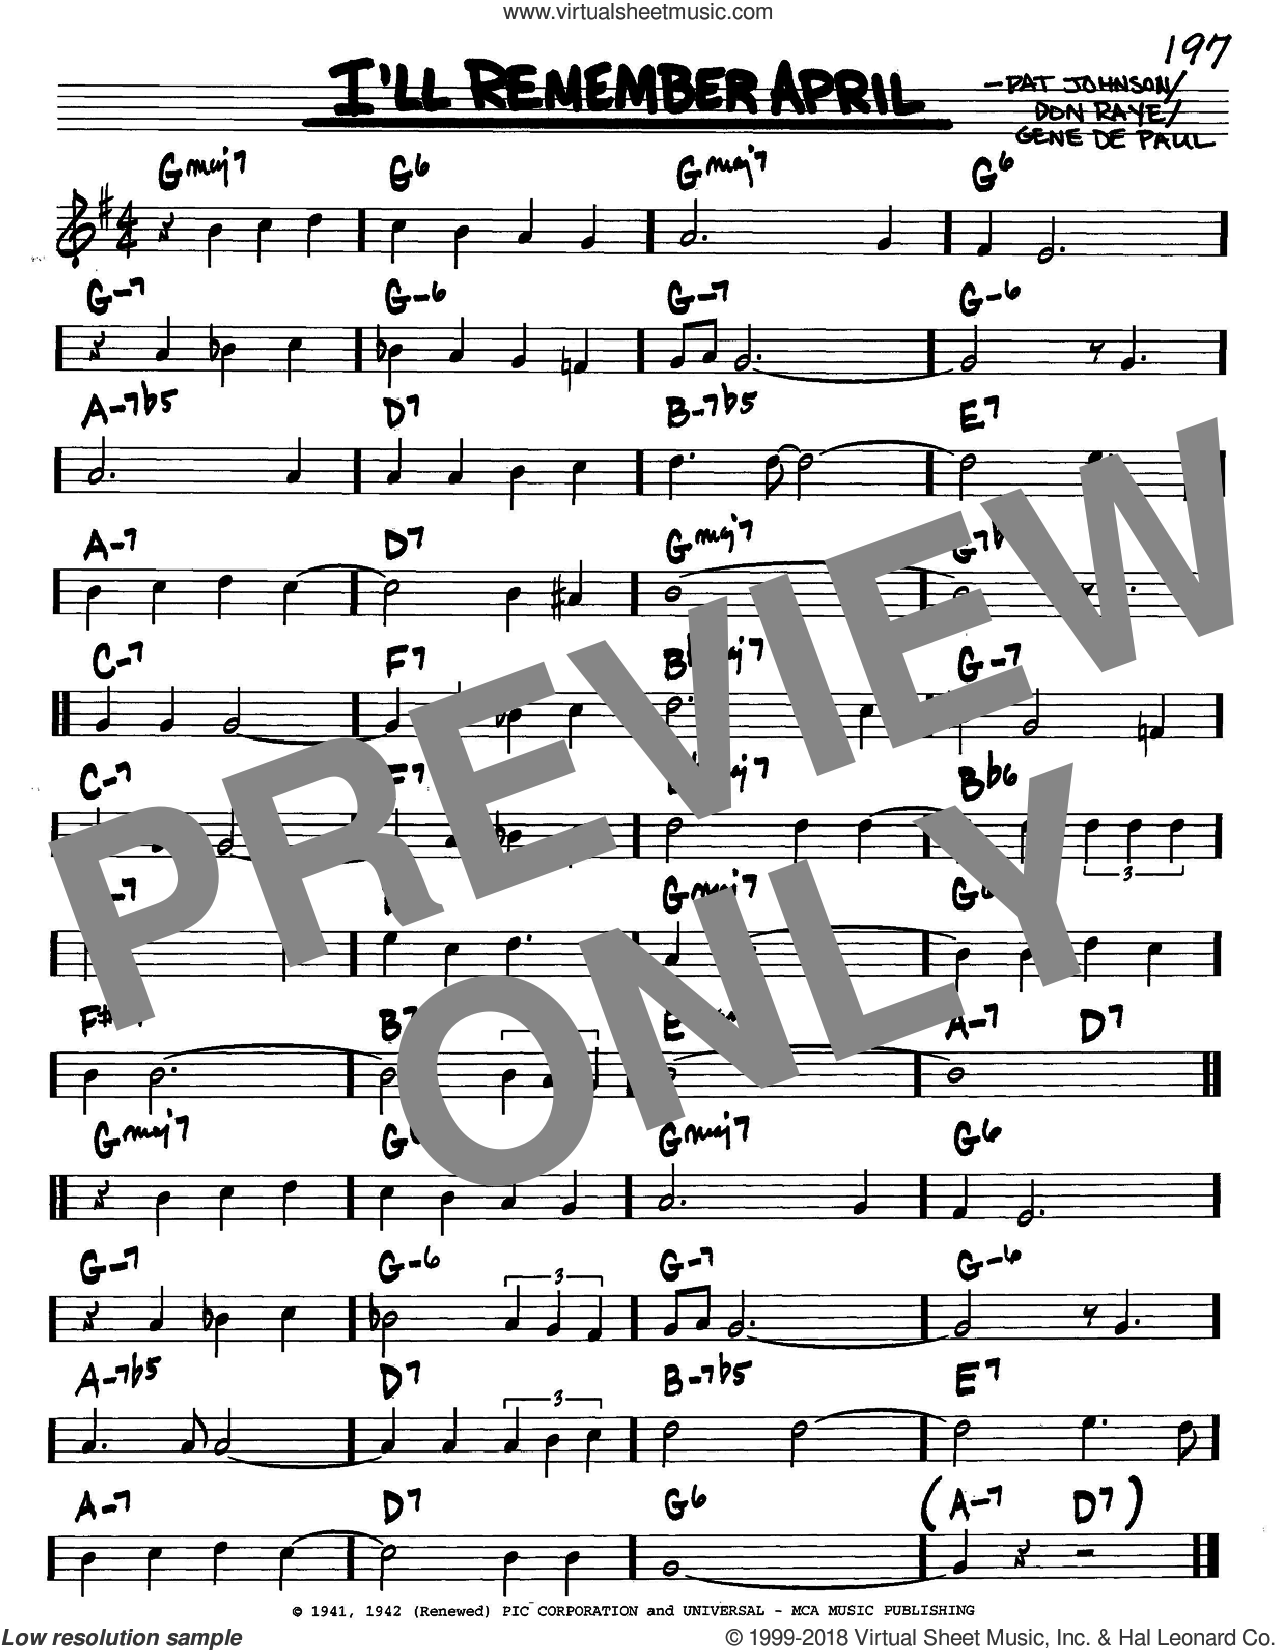 I'll Remember April sheet music for voice and other instruments (in C) by Woody Herman, Don Raye, Gene DePaul and Pat Johnson, intermediate skill level